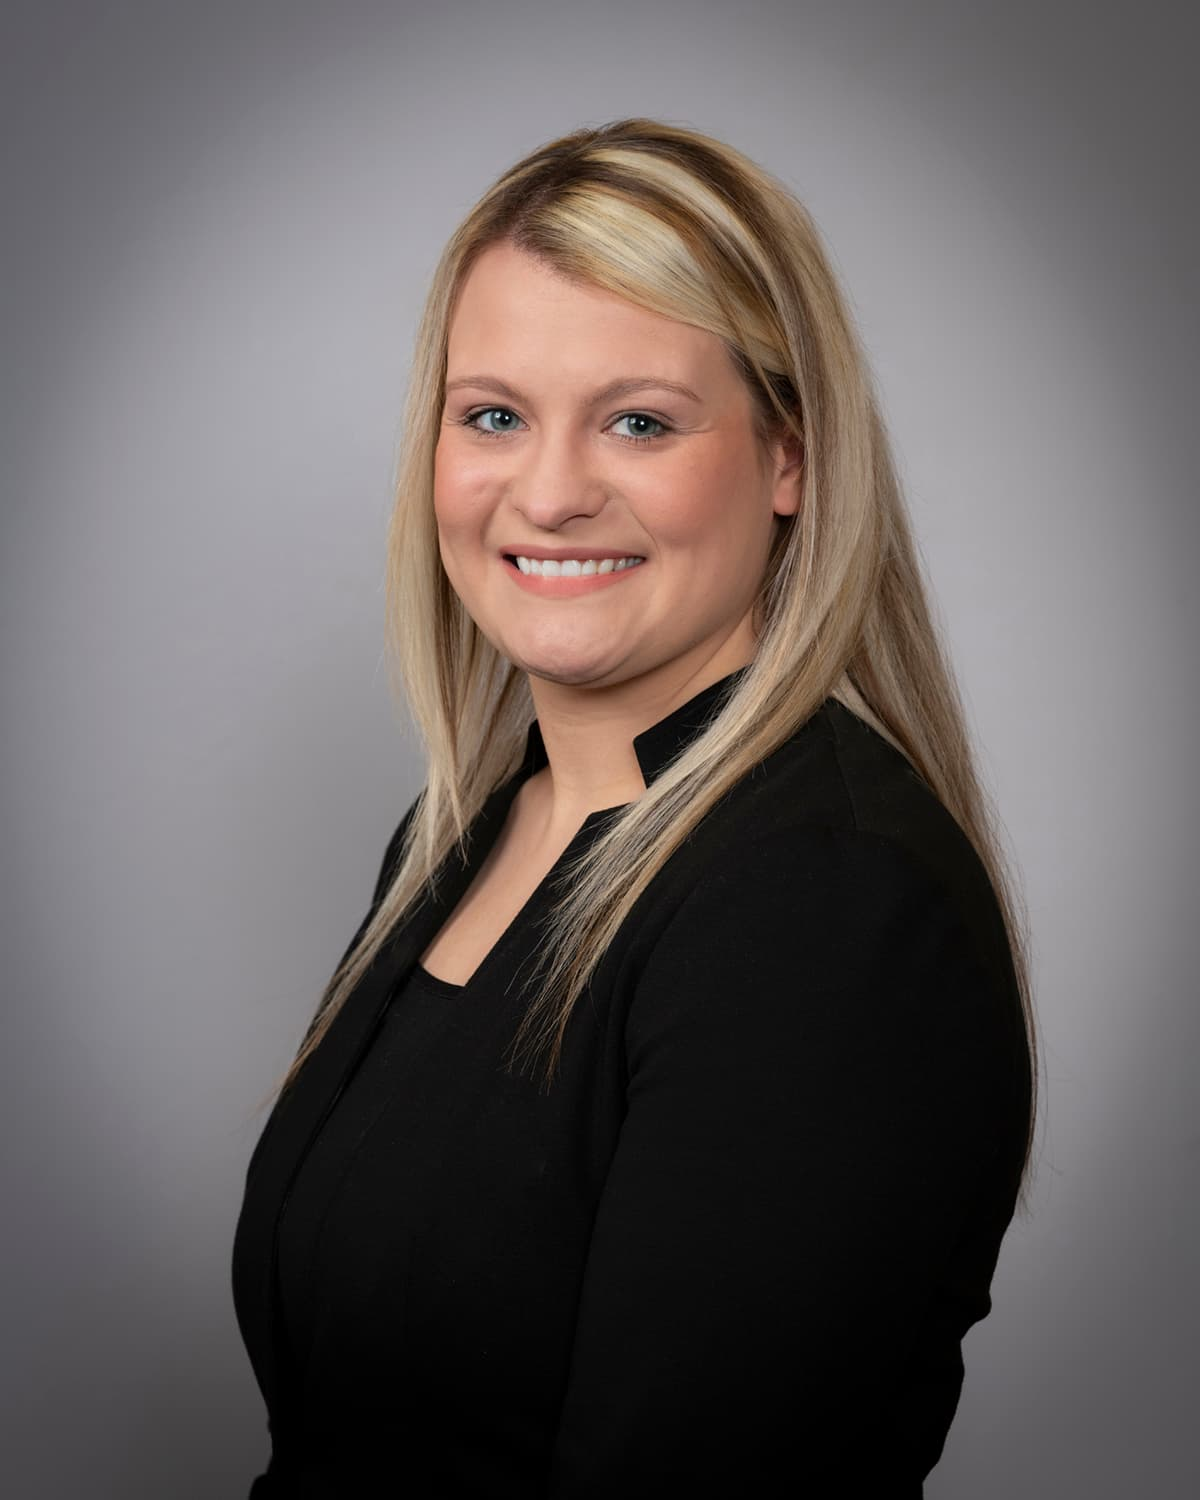 A portrait photograph of DCECU Accountant Alison Lutren